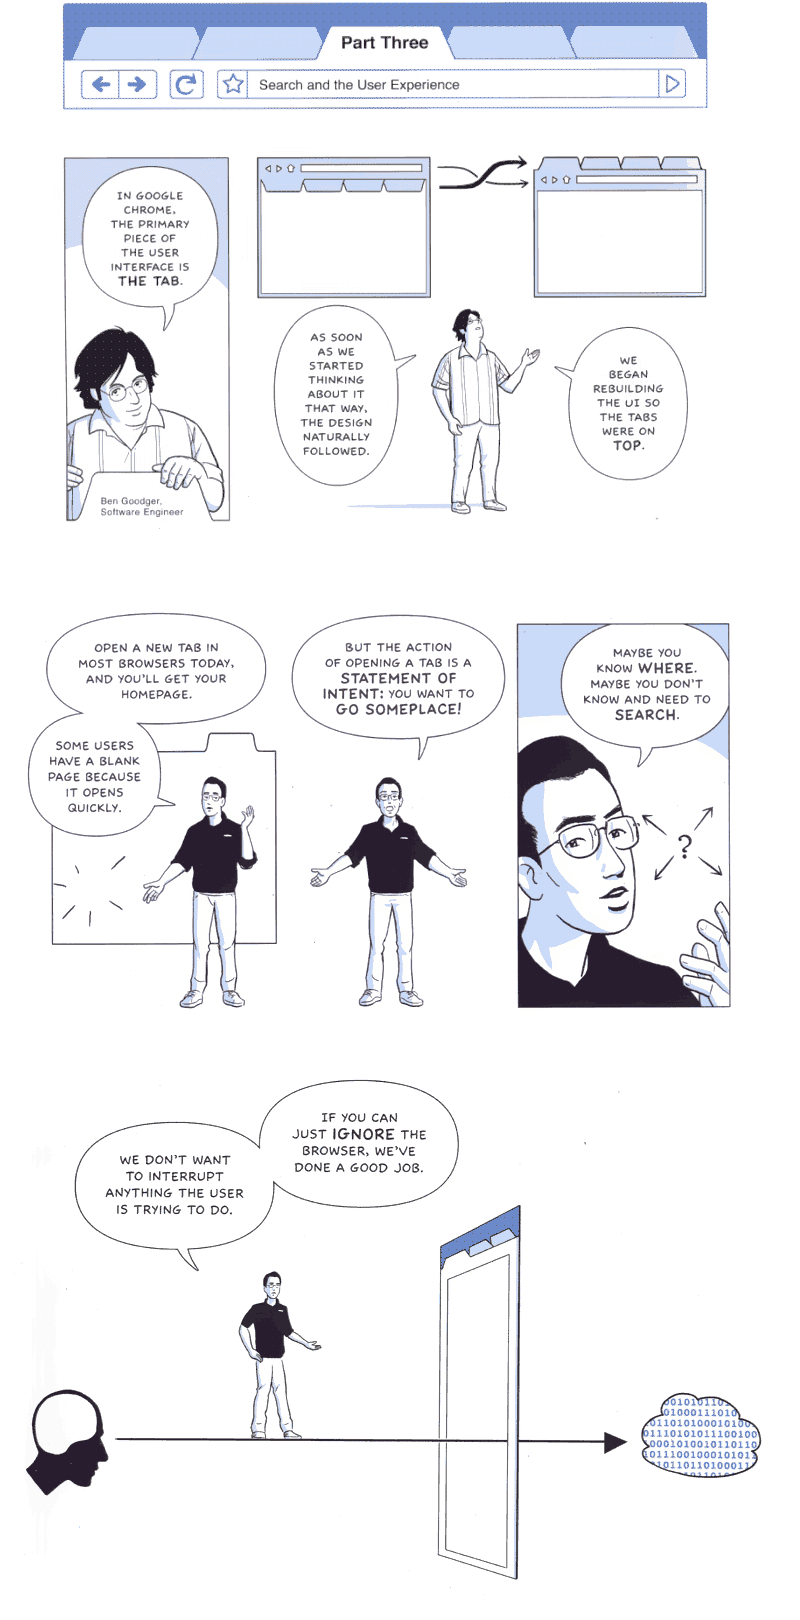 Excerpts from Google Chrome, the Cartoon - from page 18, 21, 24